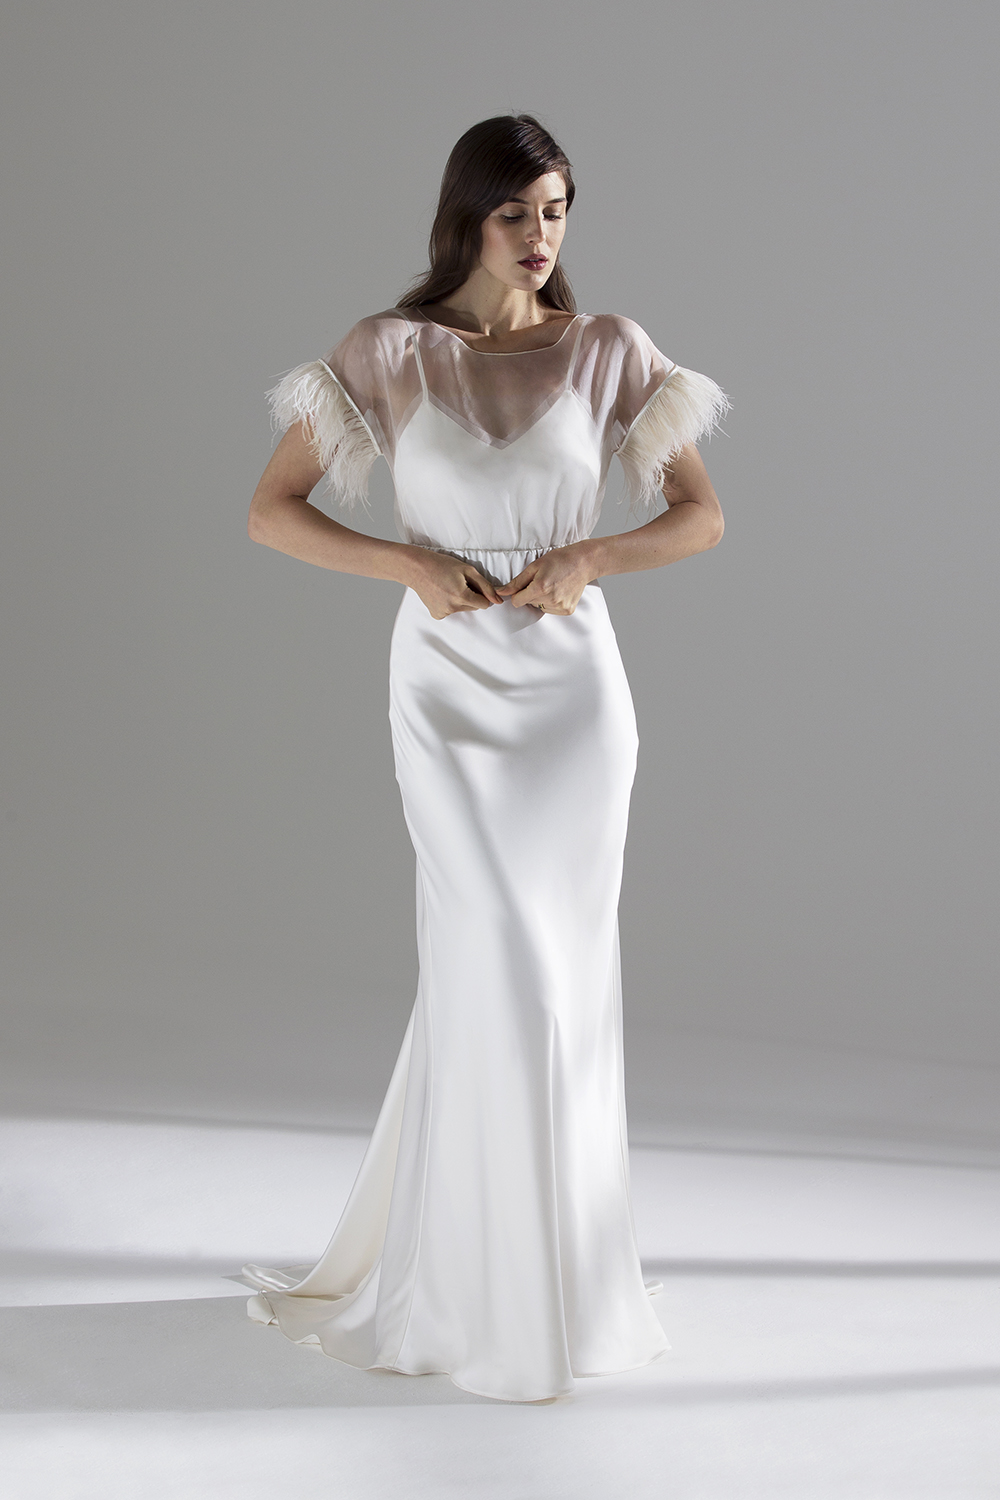 Halfpenny London for Net A Porter | Wedding dresses and separates for the modern bride